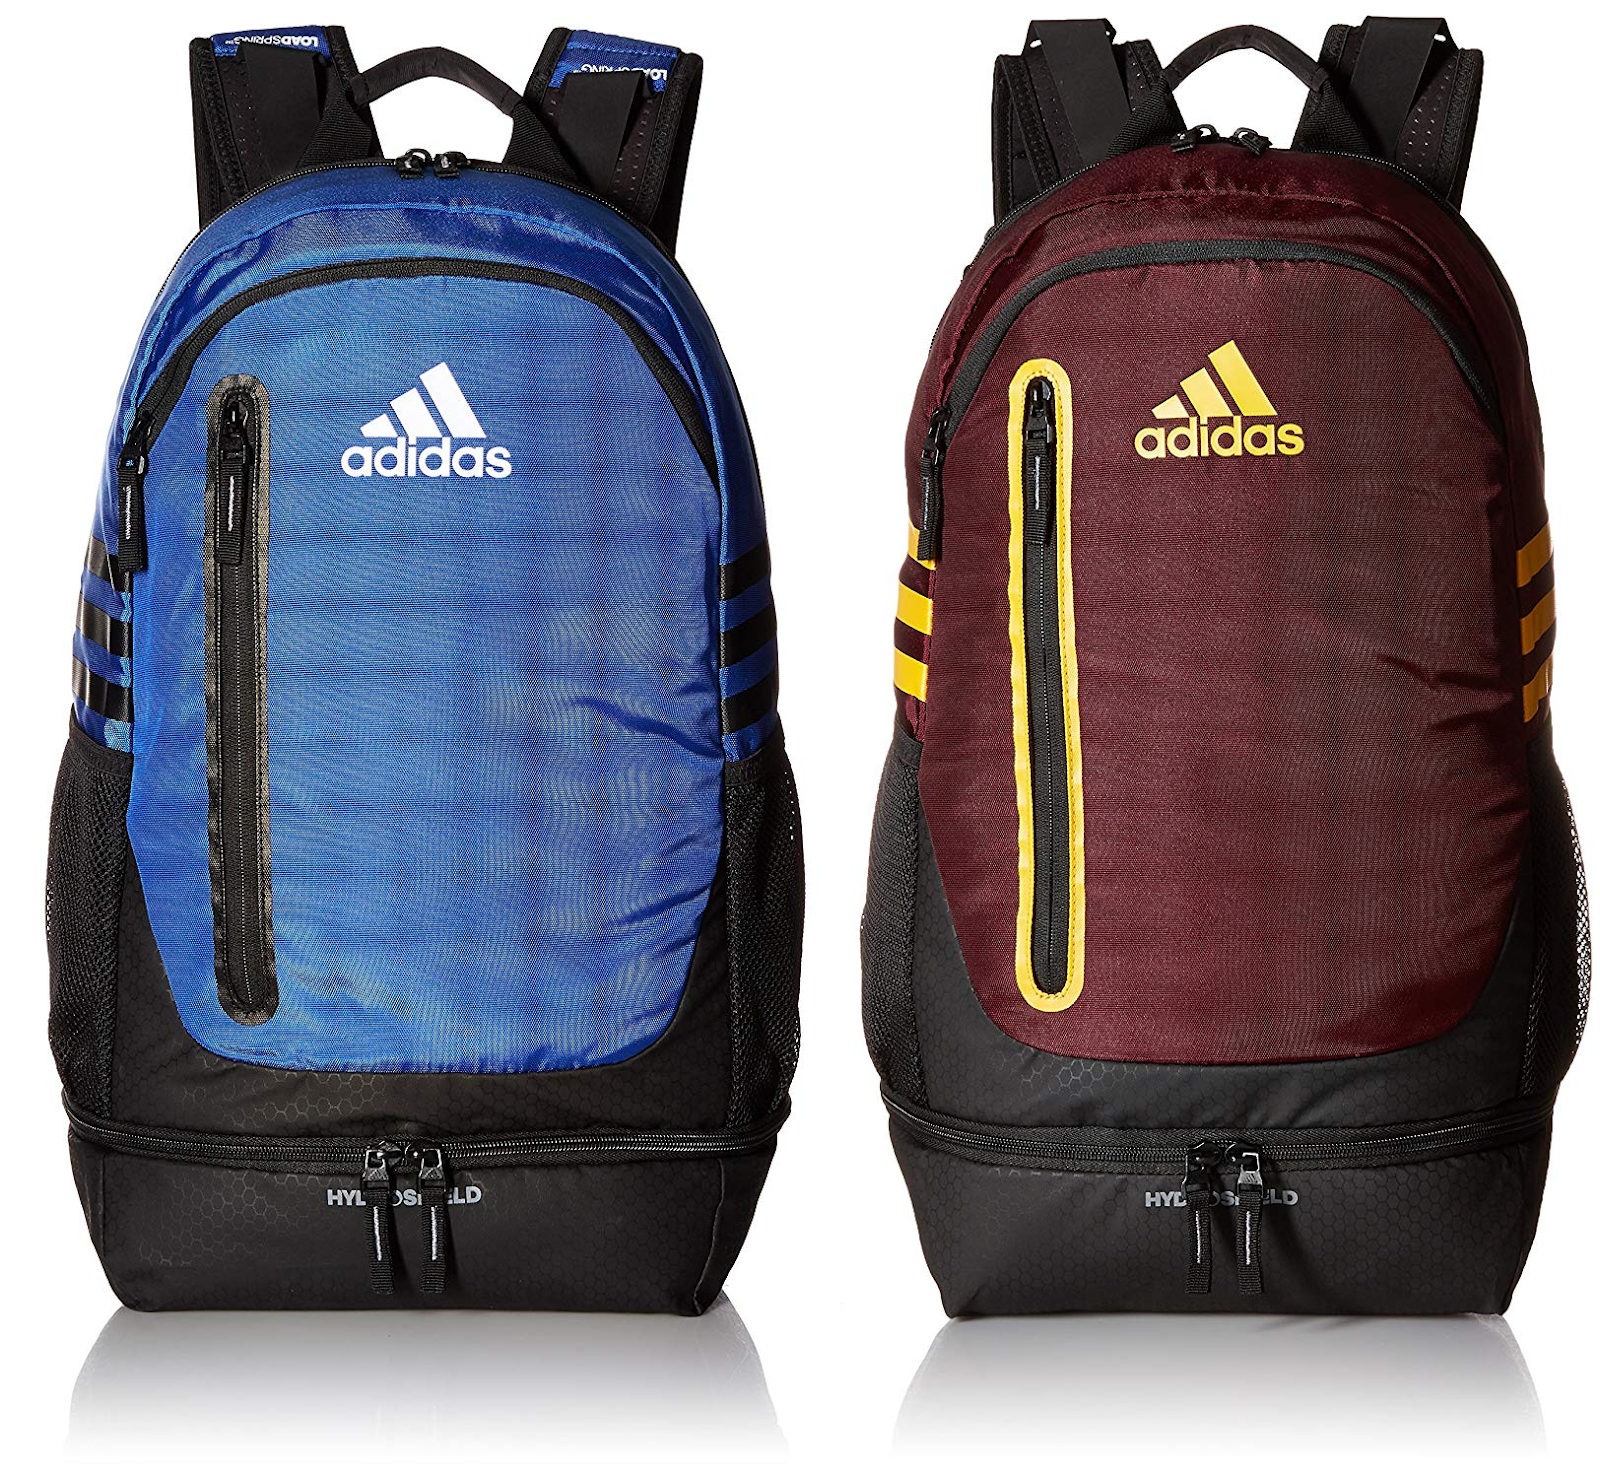 13f02f3df904 Head over to Amazon and get this adidas Unisex Pivot Team Backpack in color  Bold Blue or Maroon on sale for  26.79 (Reg.  62.07).